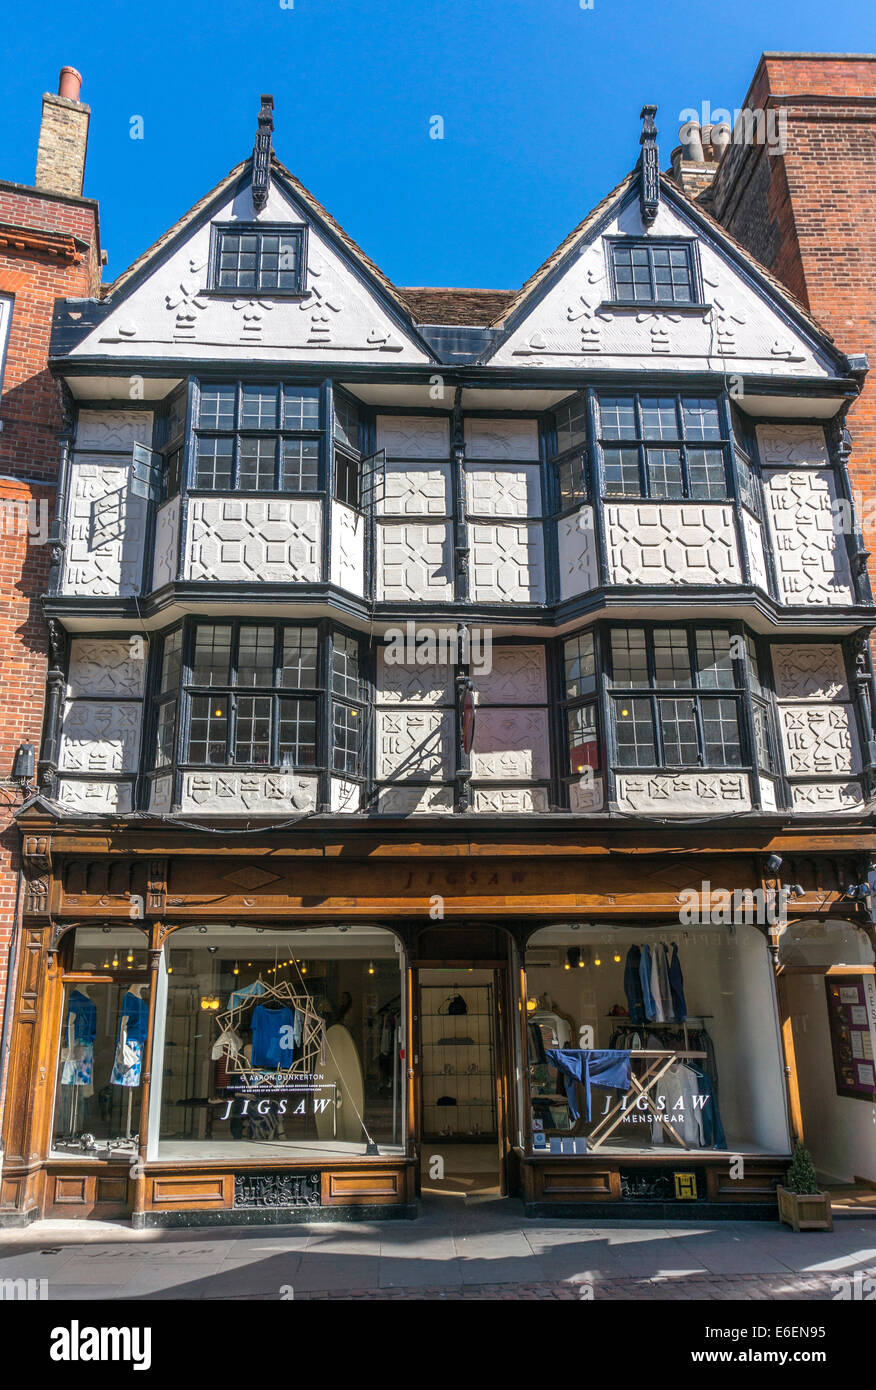 Jigsaw, a clothes shop based in a historic, four storey old building, on Trinity Street, city centre of Cambridge, - Stock Image